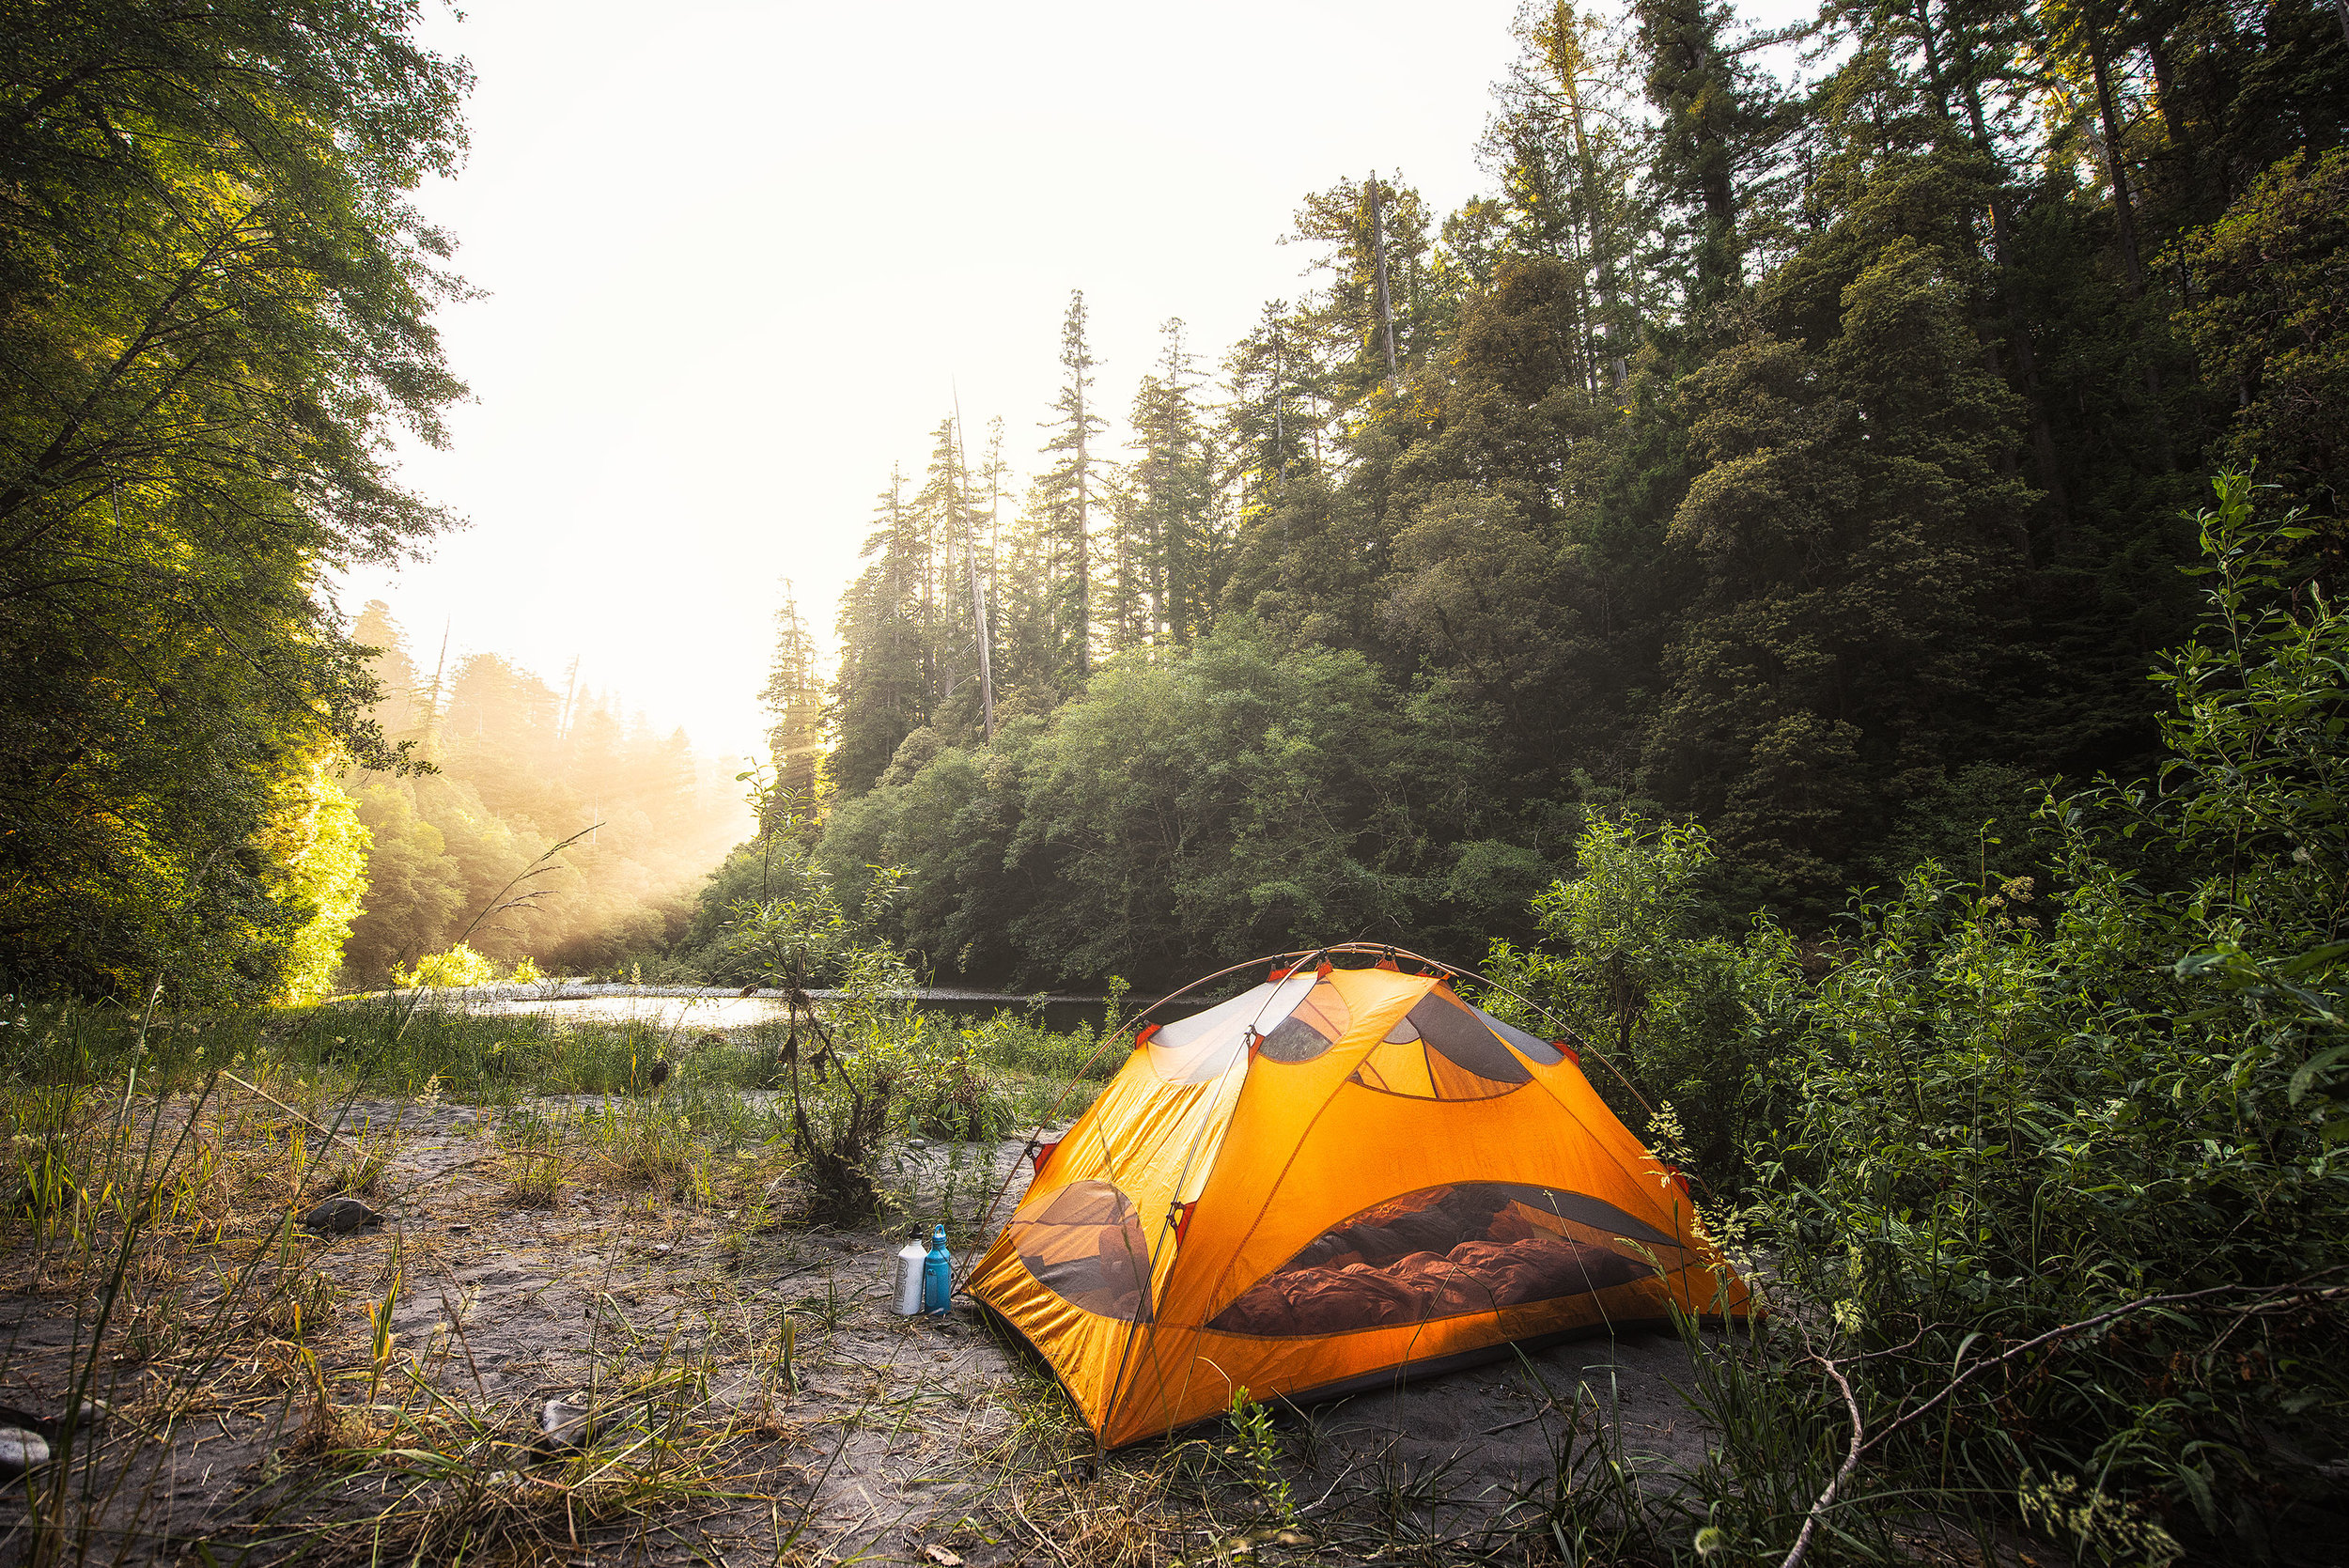 austin-trigg-redwood-water-bottle-sunset-tent-california-tall-trees-grove-camping-hike-adventure.jpg